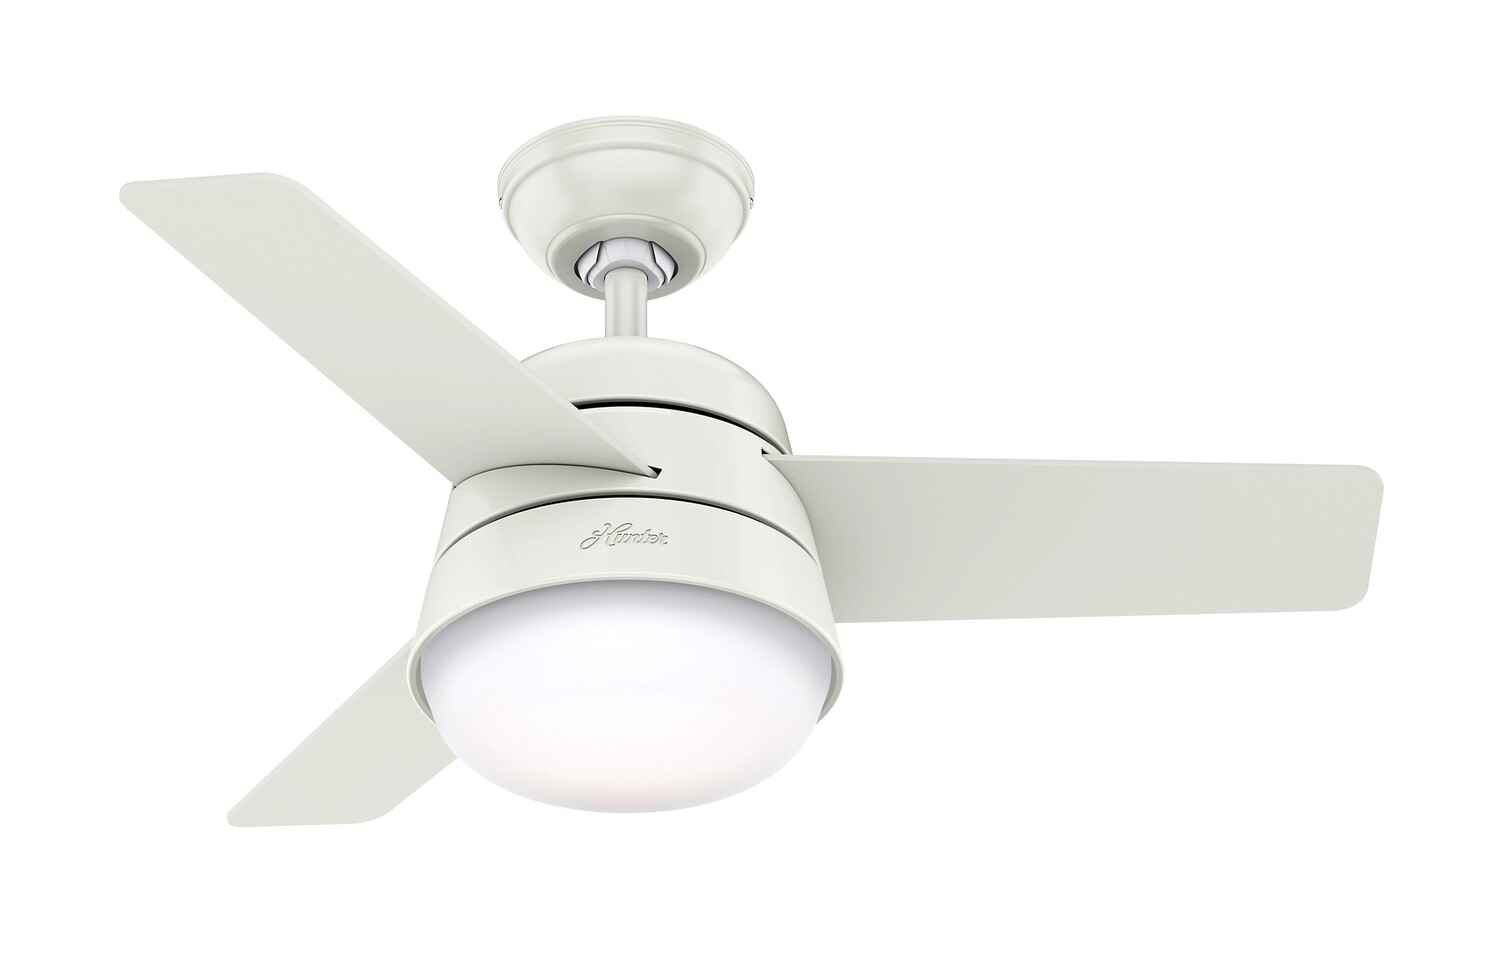 HUNTER FINLEY 91 WE ceiling fan Ø91 cm Fresh White with Fresh White/Natural Wood blades with remote control and light kit included